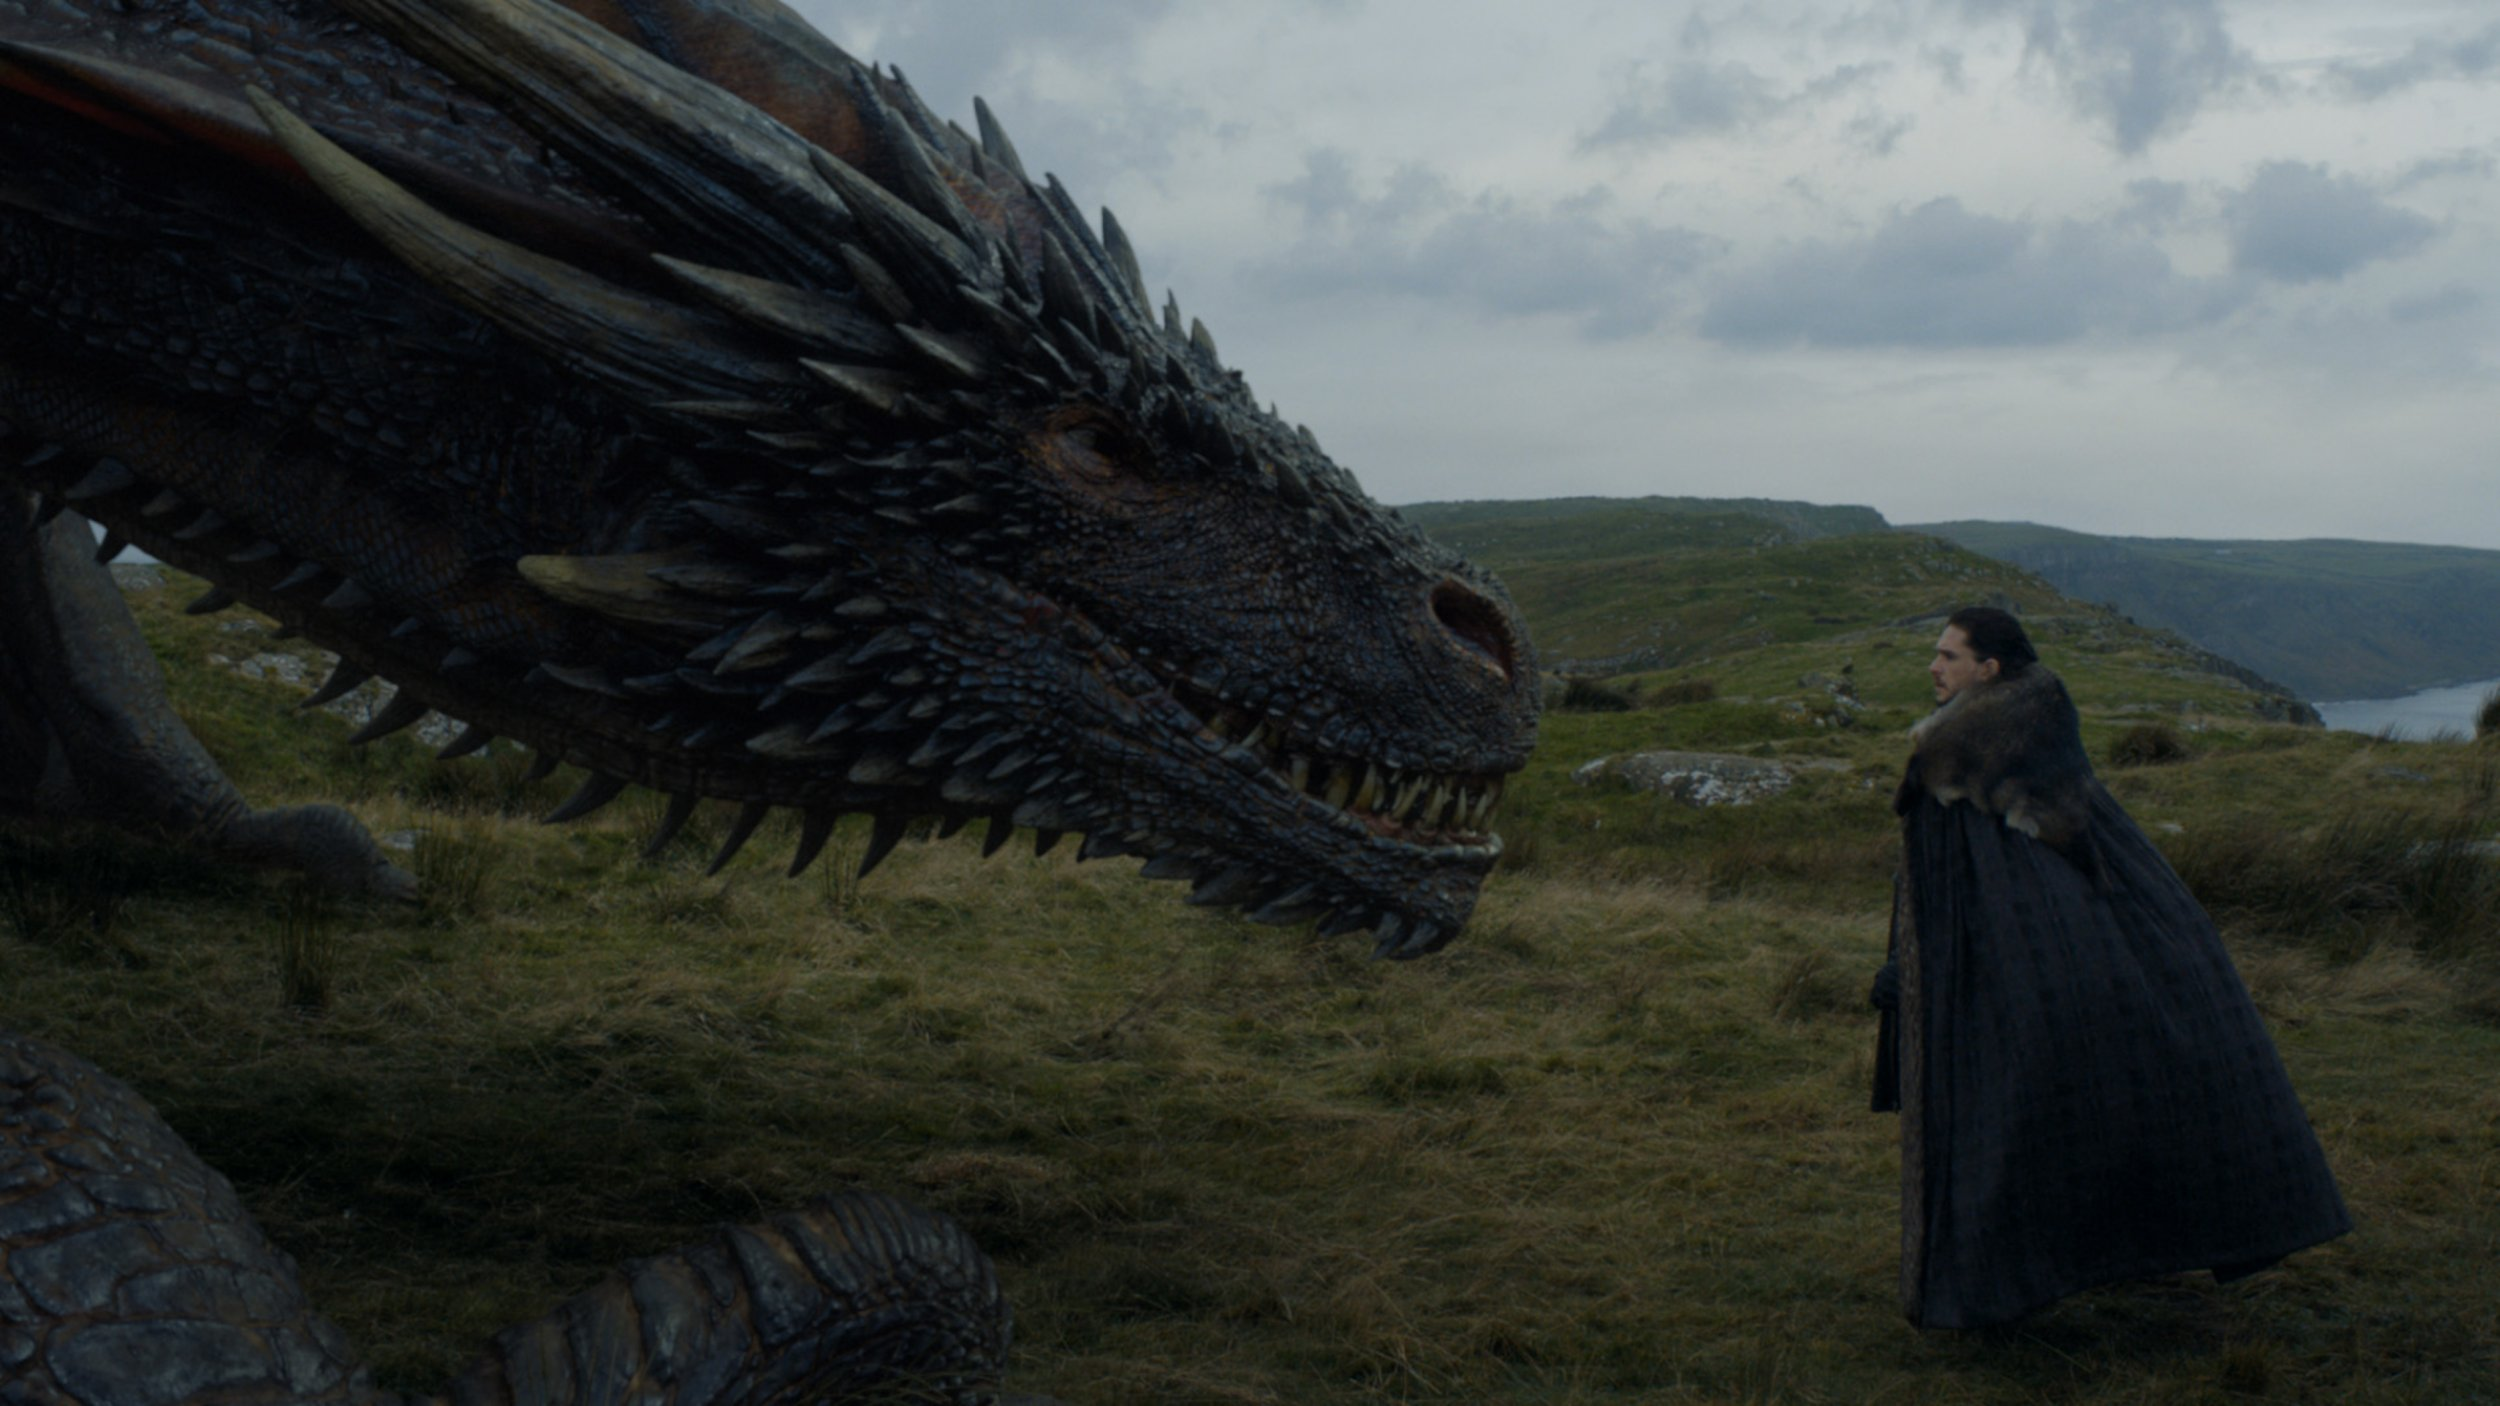 Game of Thrones - Jon Snow meets Drogon